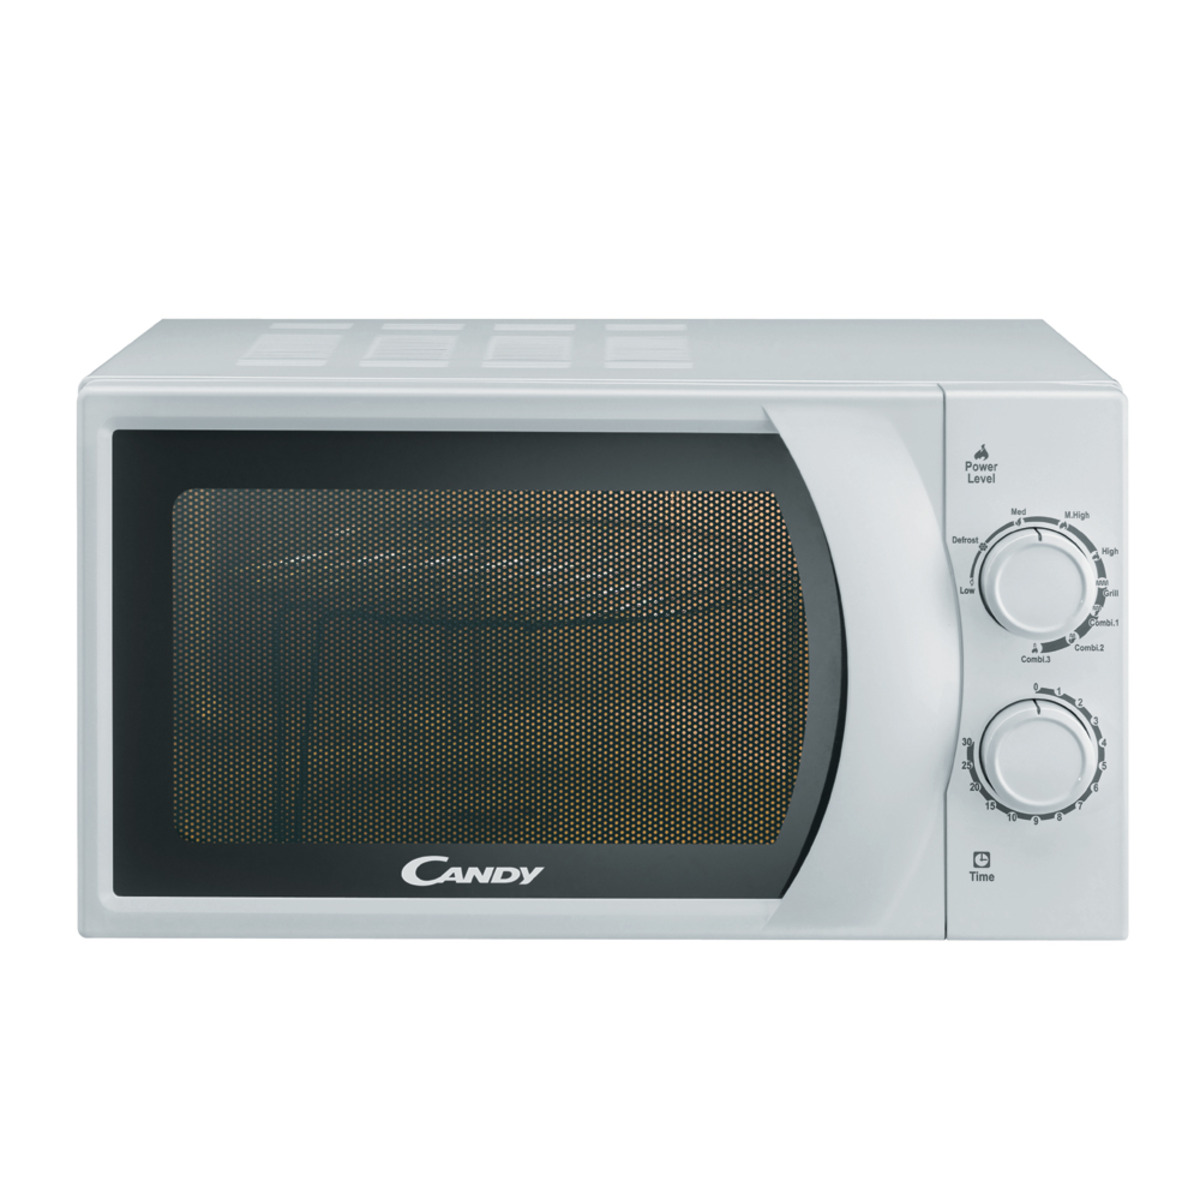 CANDY Microonde CMG 2071 M con grill 20 L 7000 W Bianco